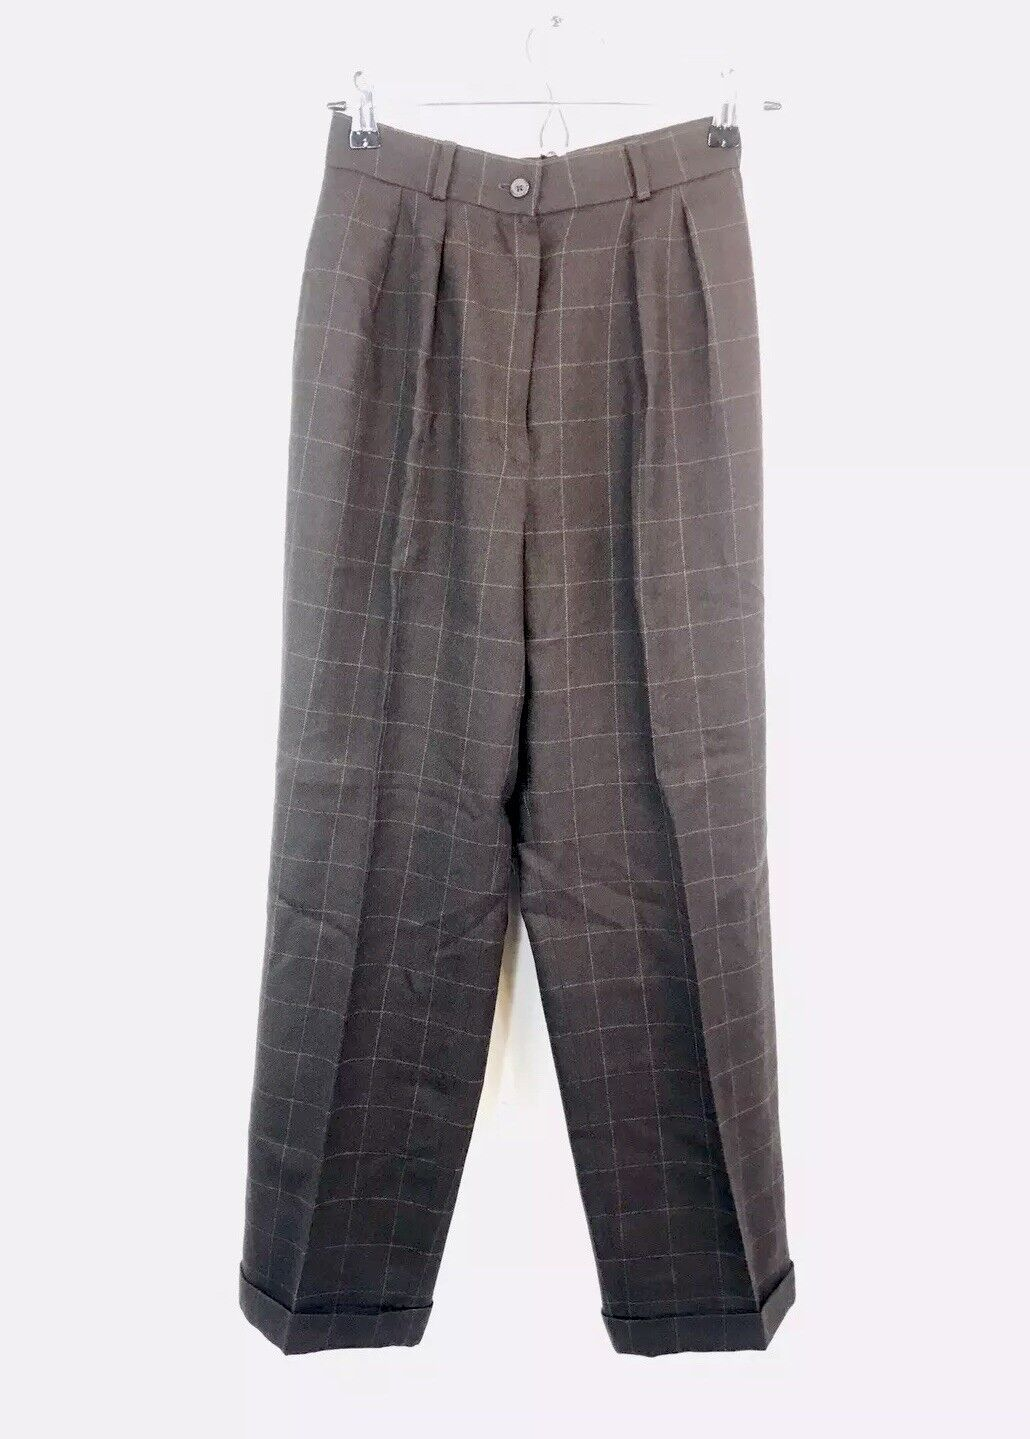 Vintage Ralph Lauren 100% Worsted Wool Plaid Pants 4P Made In U.S.A EUC